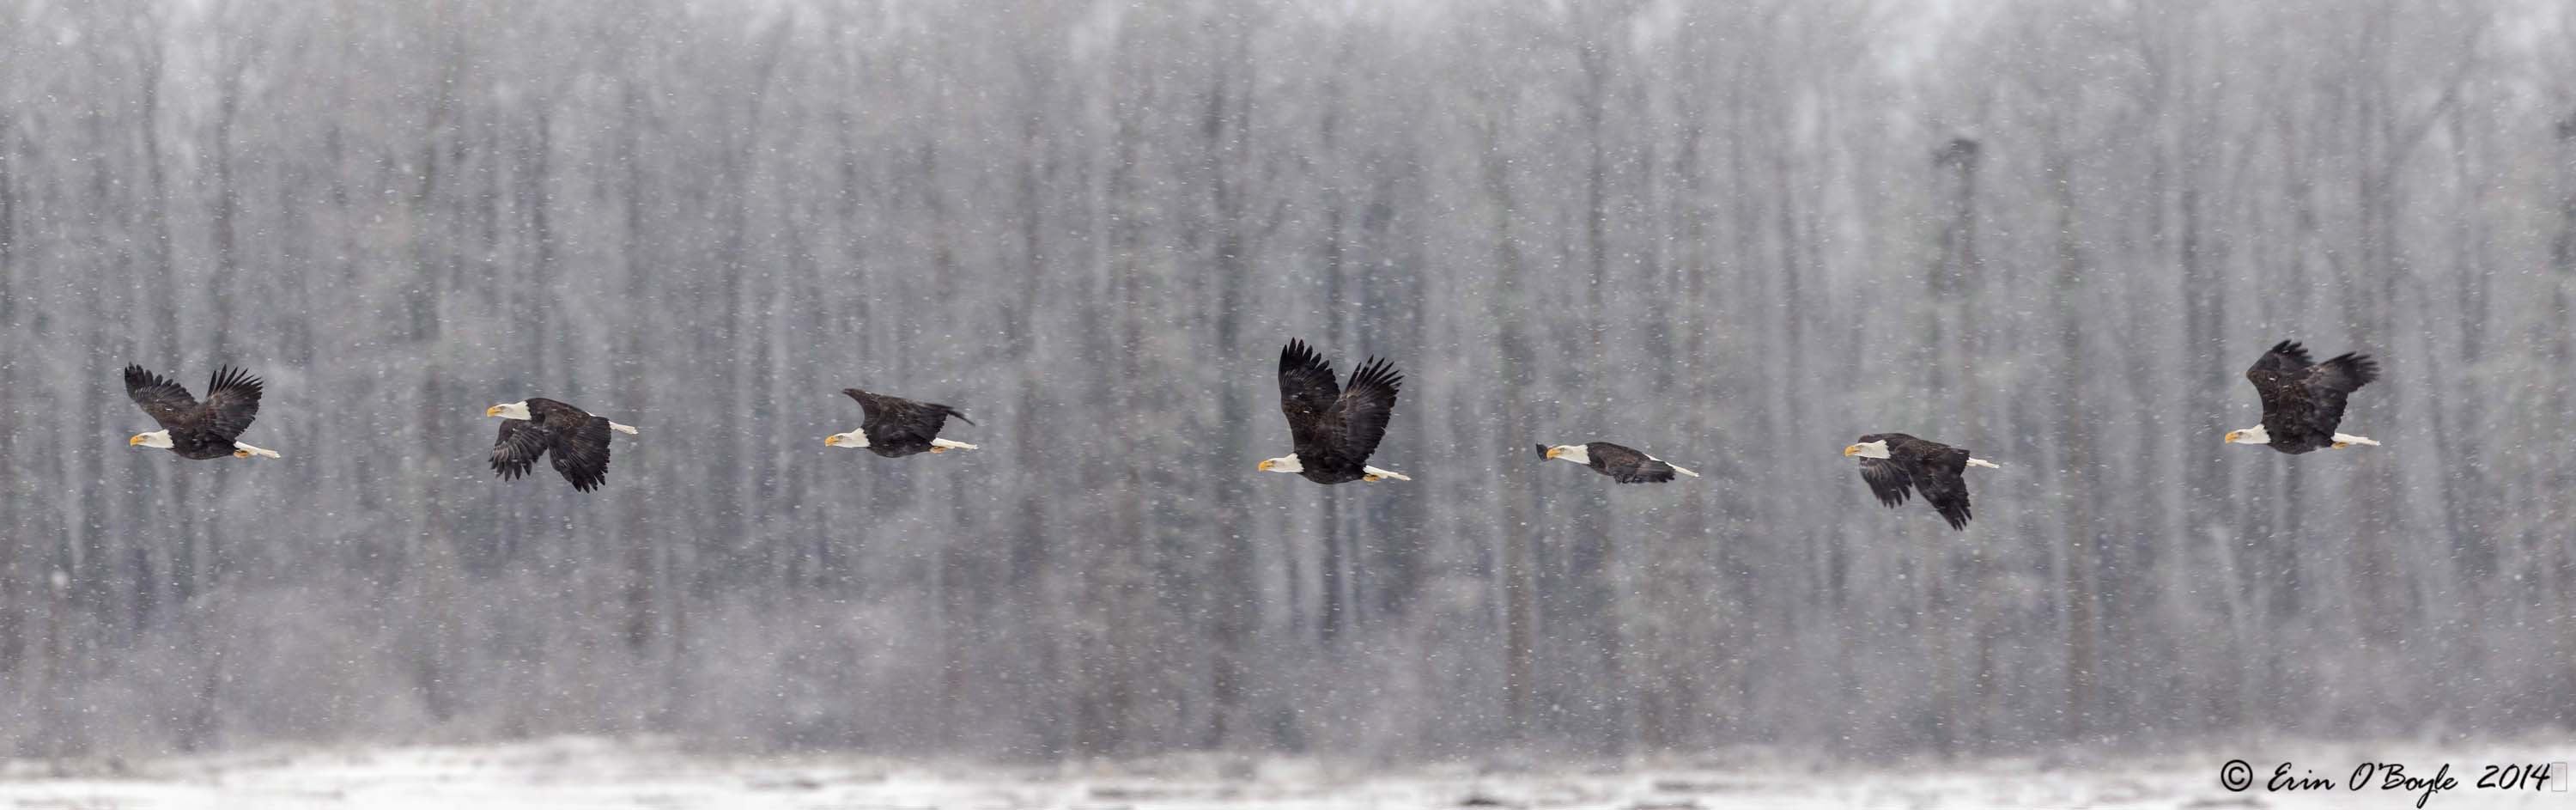 Bald Eagle Flight Study